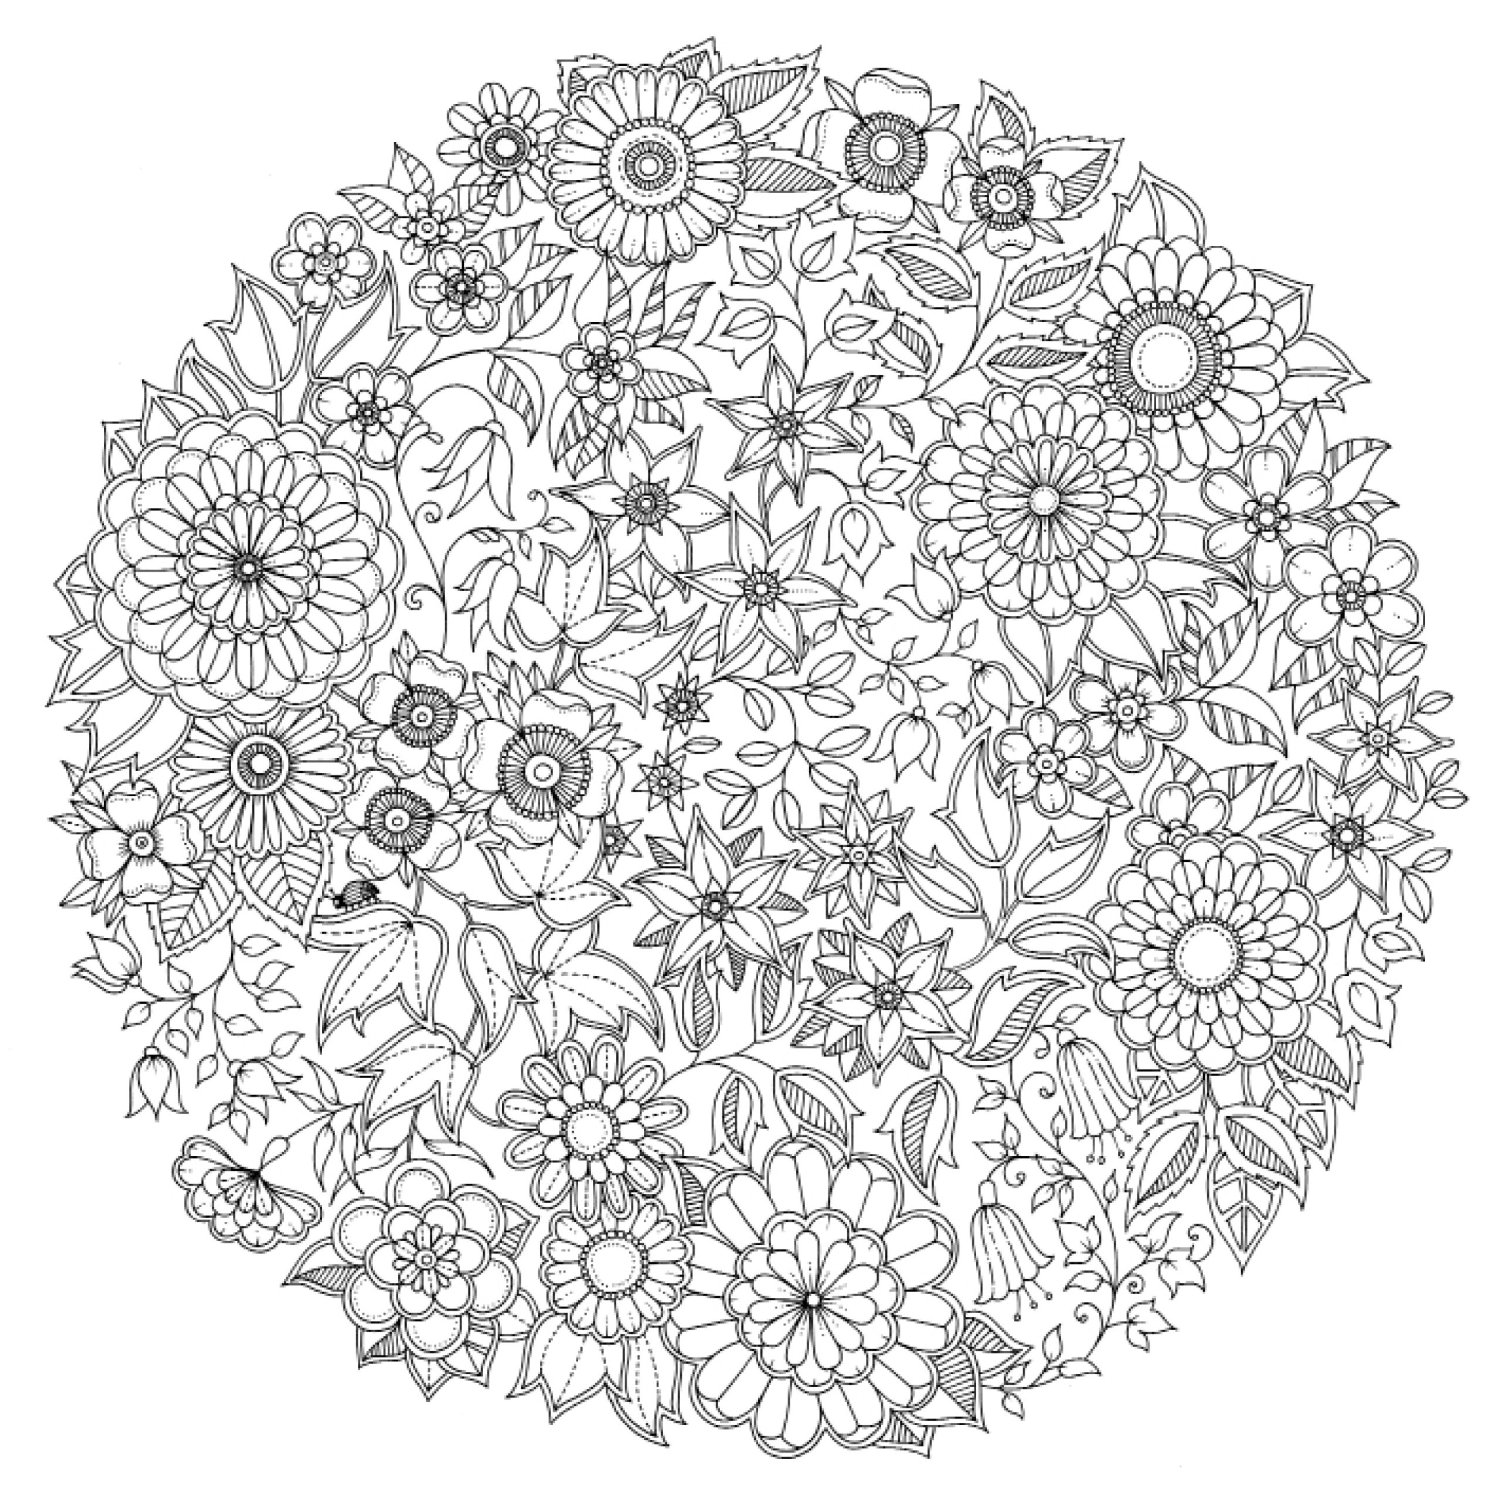 20 dessins de coloriage mandala difficile imprimer - Coloriage adulte difficile ...